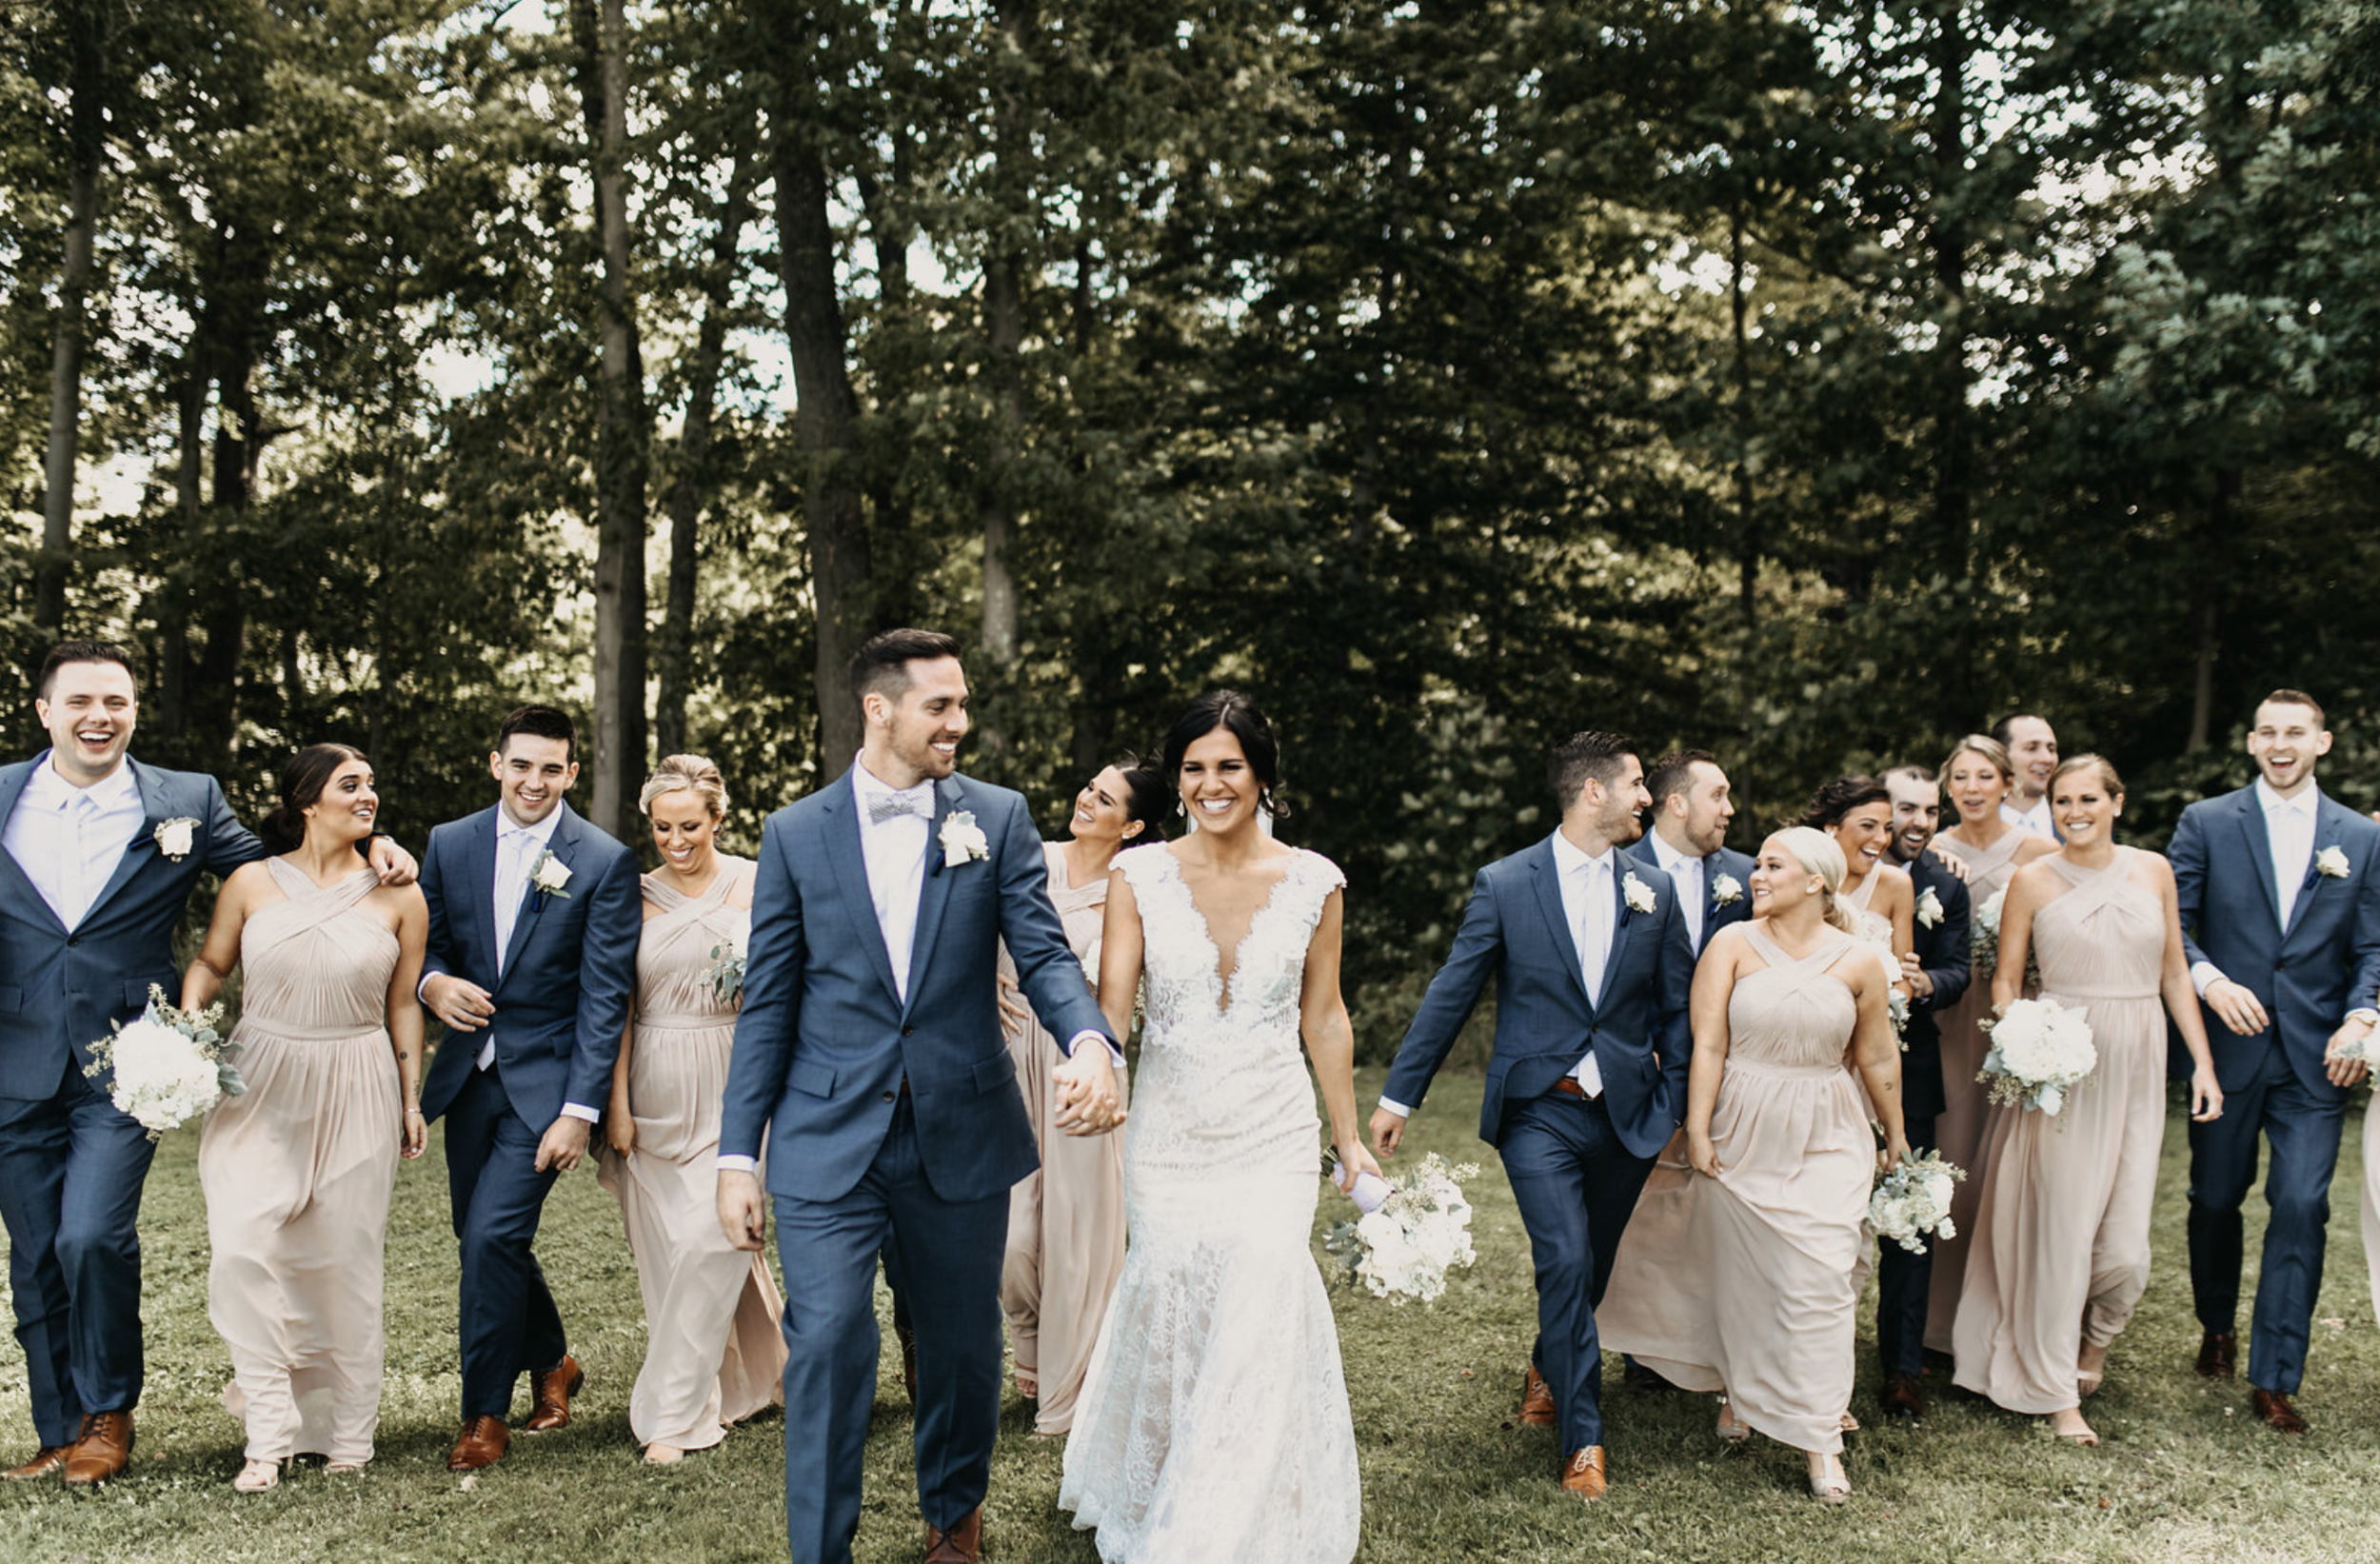 Valerie-and-TJ-McConnell-Wedding-Coordination-by-Cassandra-Clair-Event-Prep-Pittsburgh-Wedding-37.png